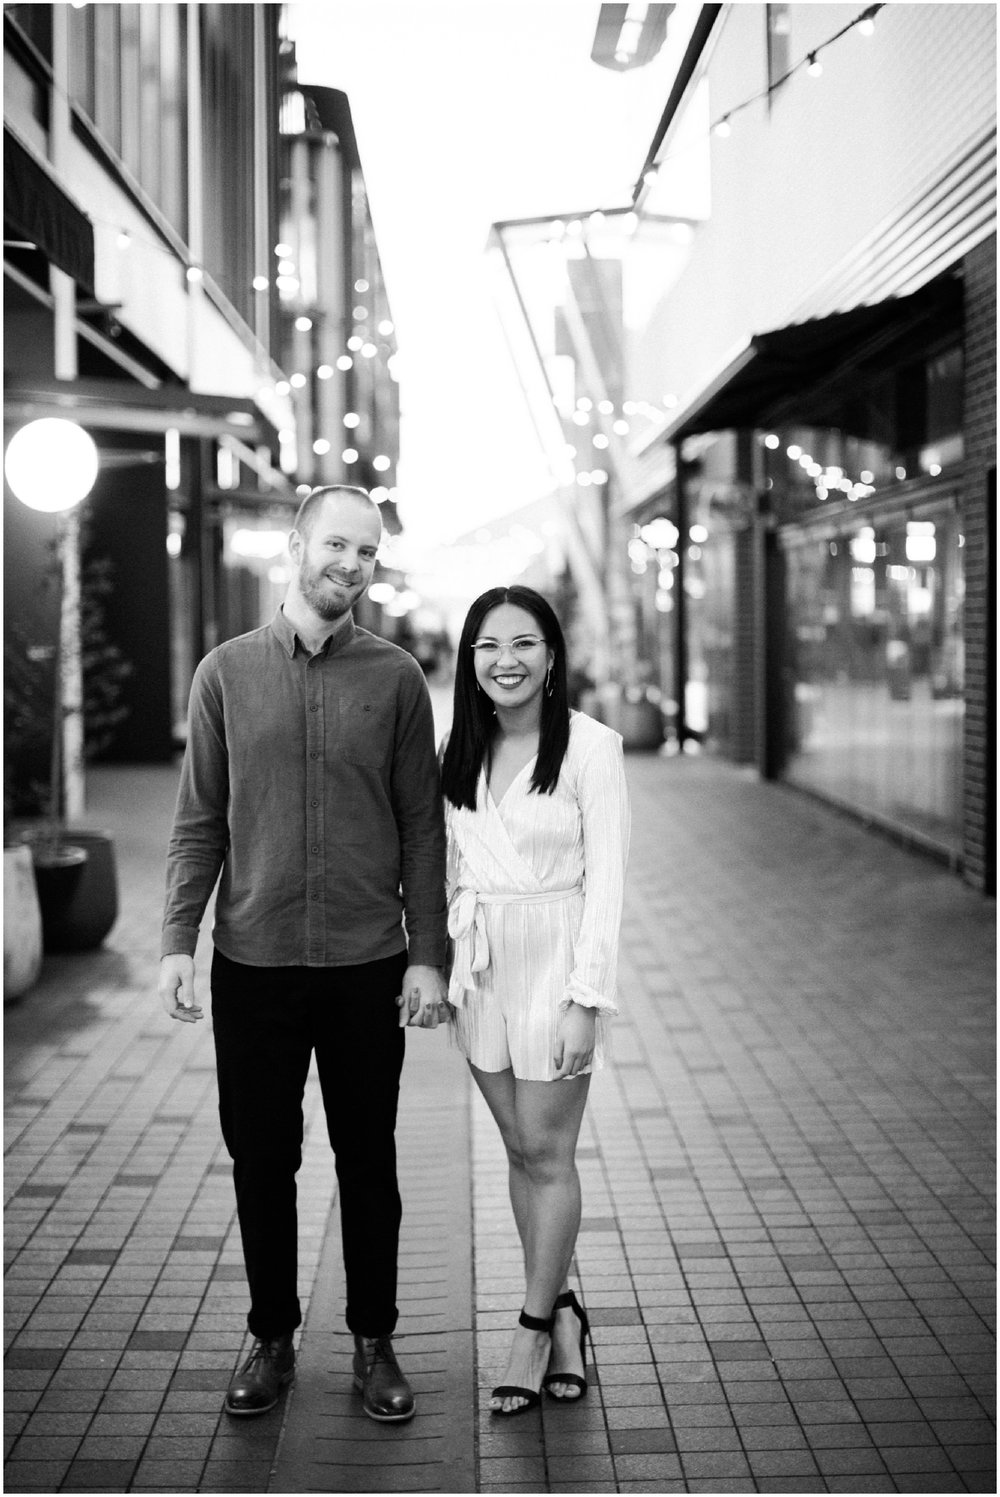 barangaroo-sydney-engagement-pre-wedding-28.jpg